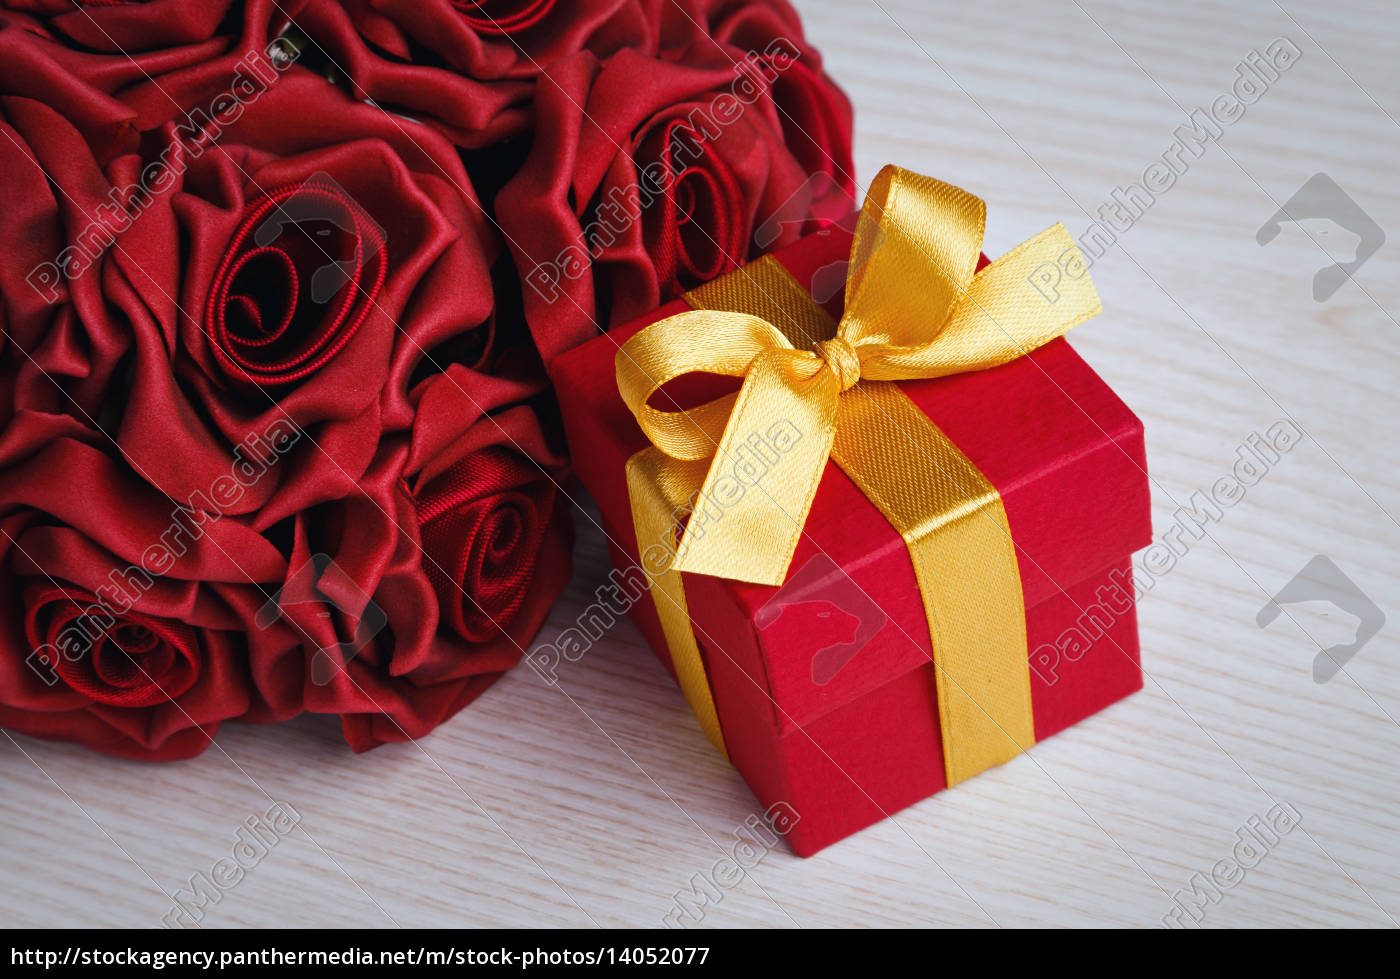 red, flowers, and, gift, box, with - 14052077